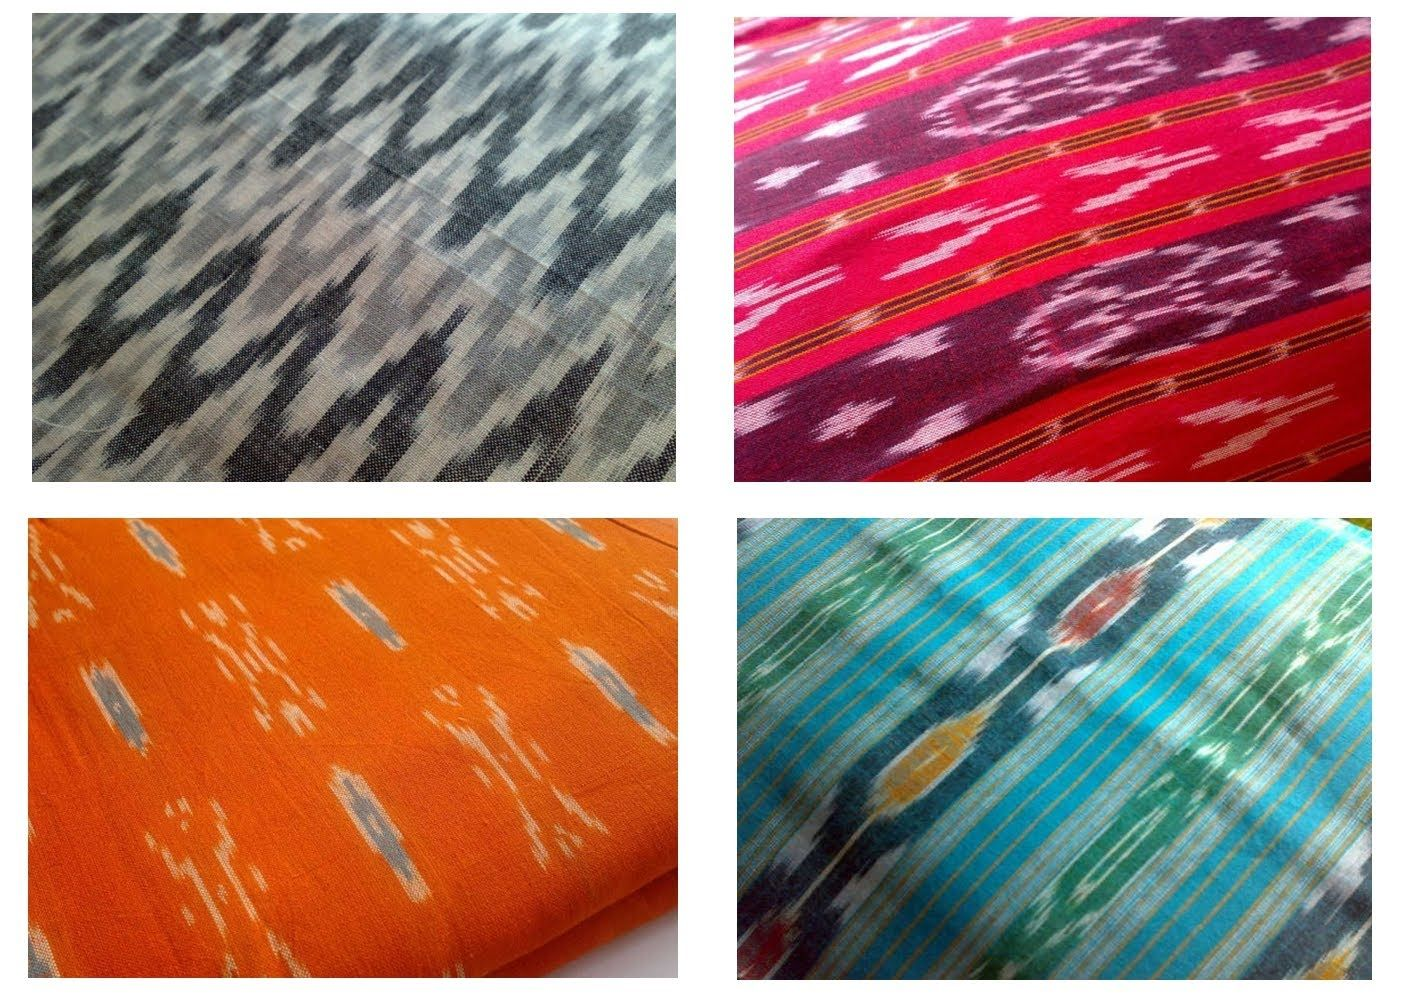 Ikat Fabric What Is Ikat How Is Ikat Made Ikat is a resist